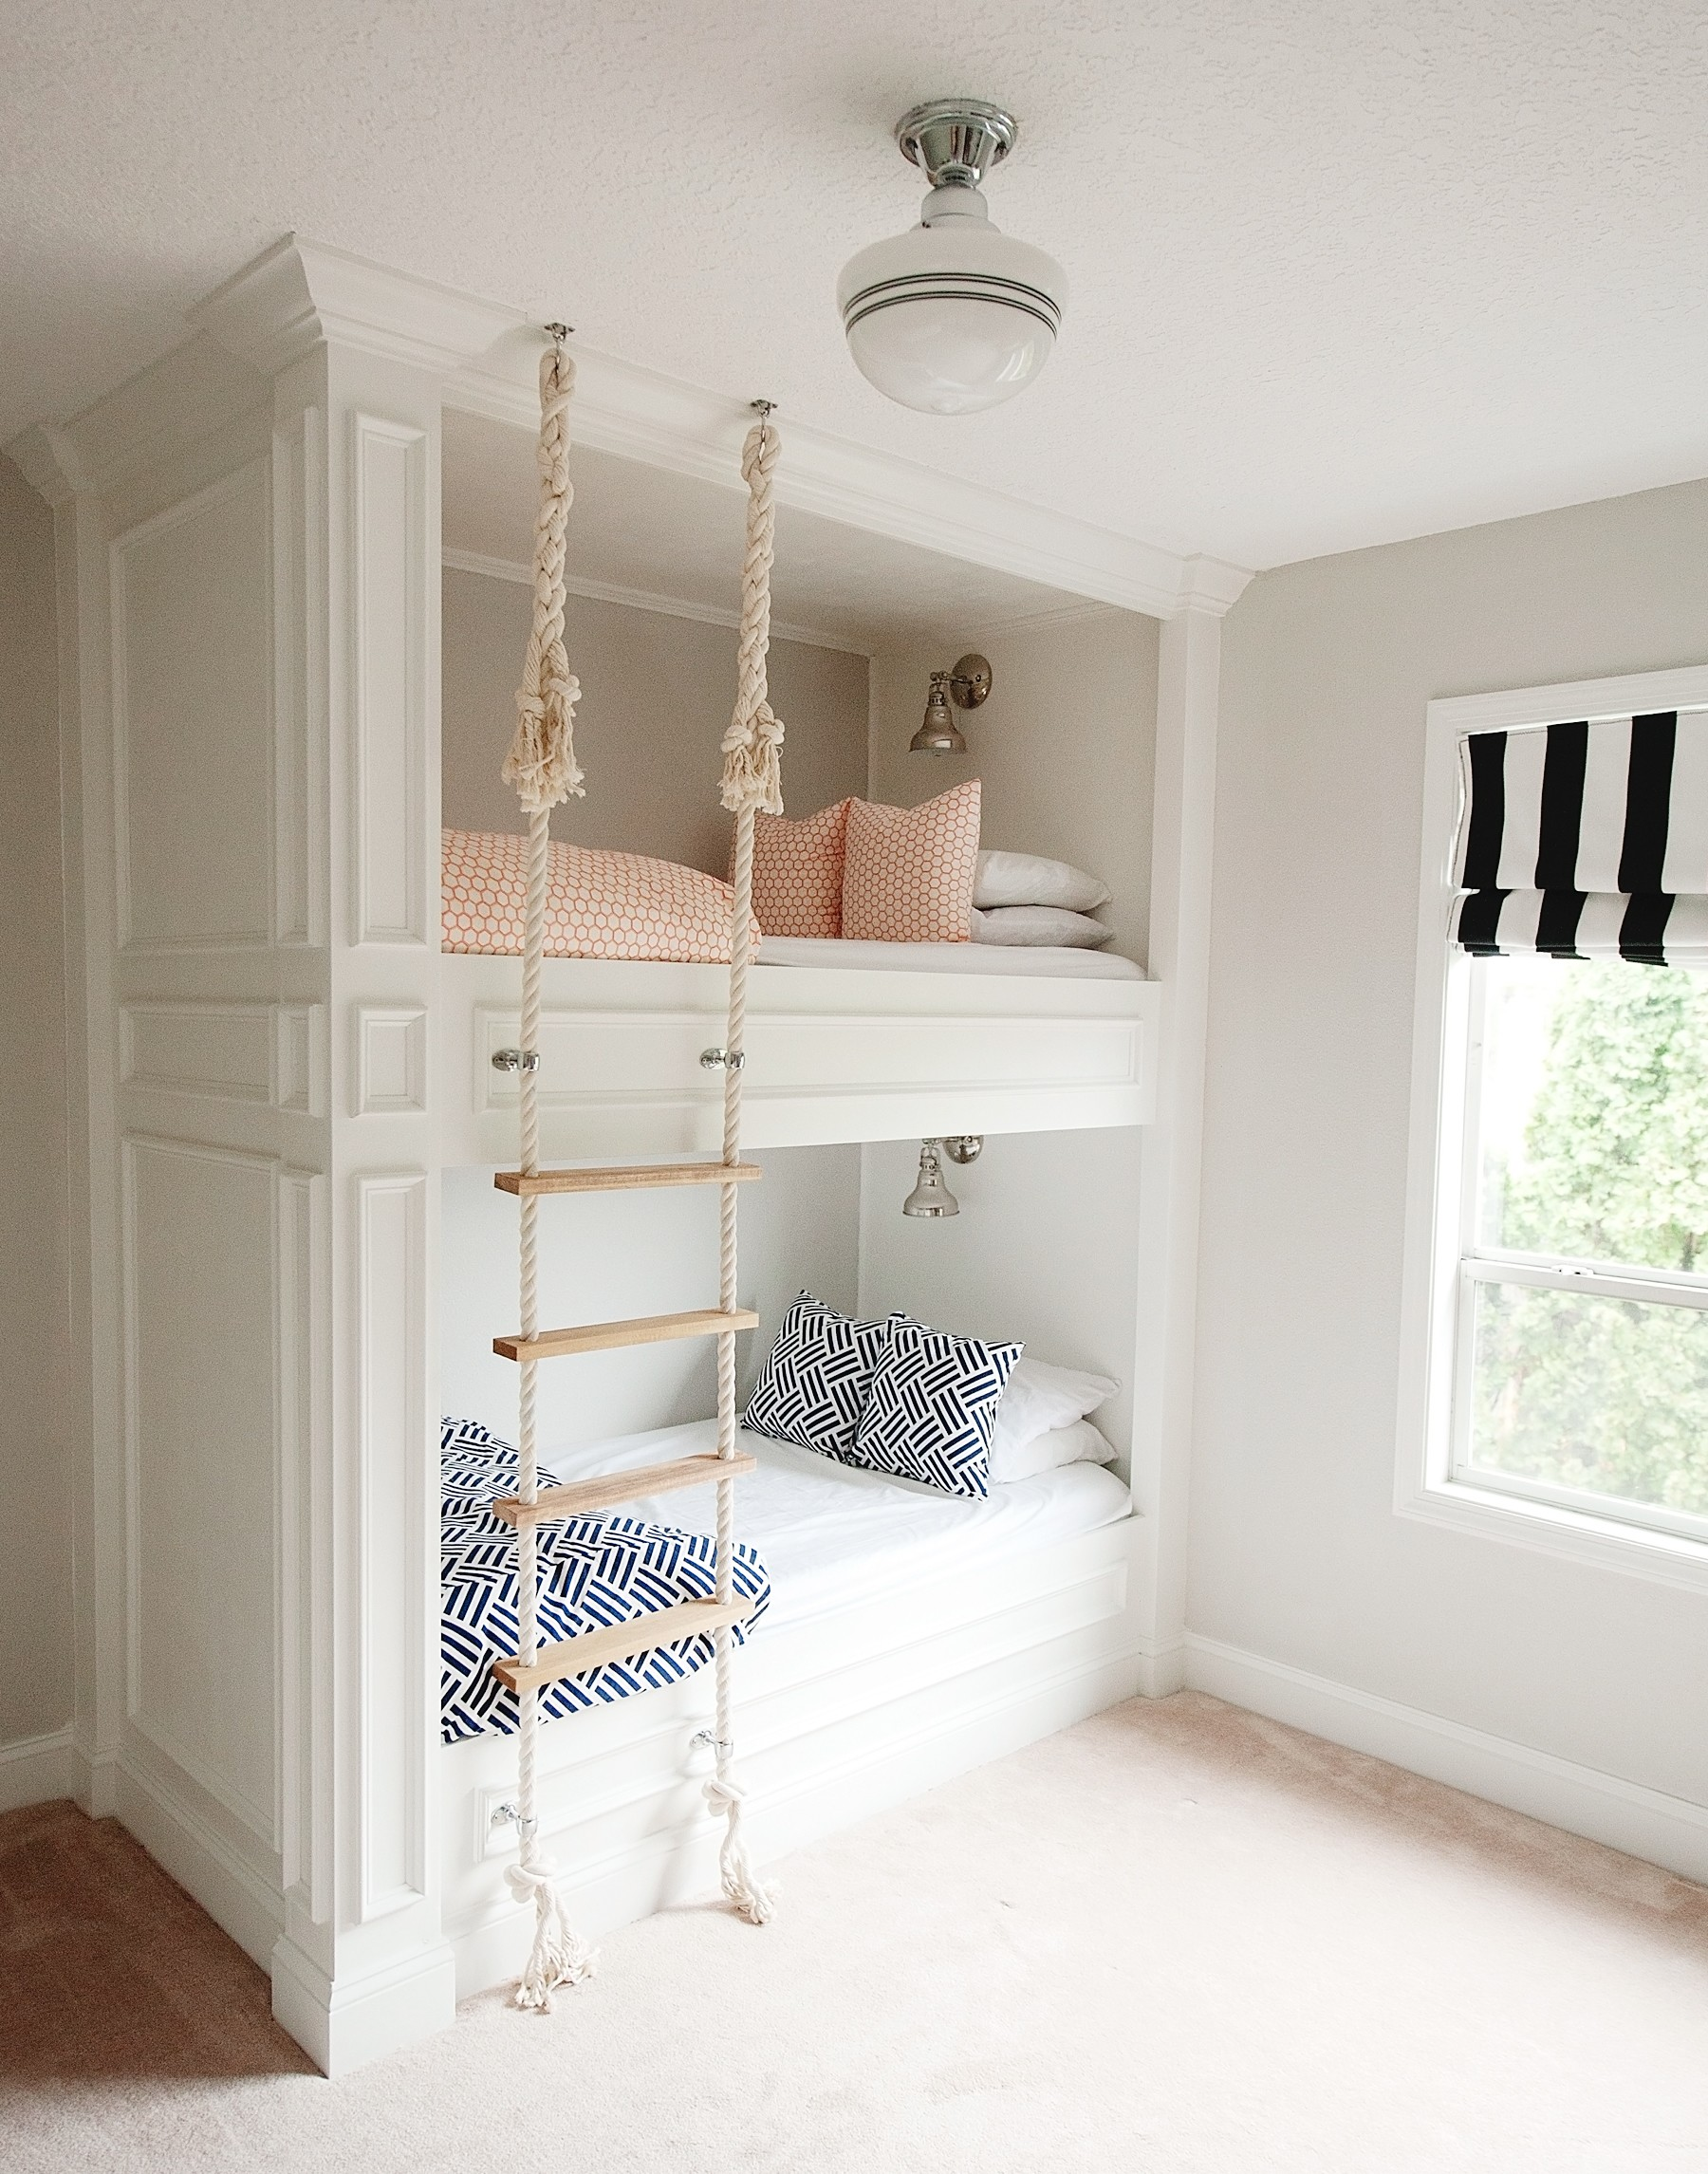 Bunk Bed with Rope Ladder